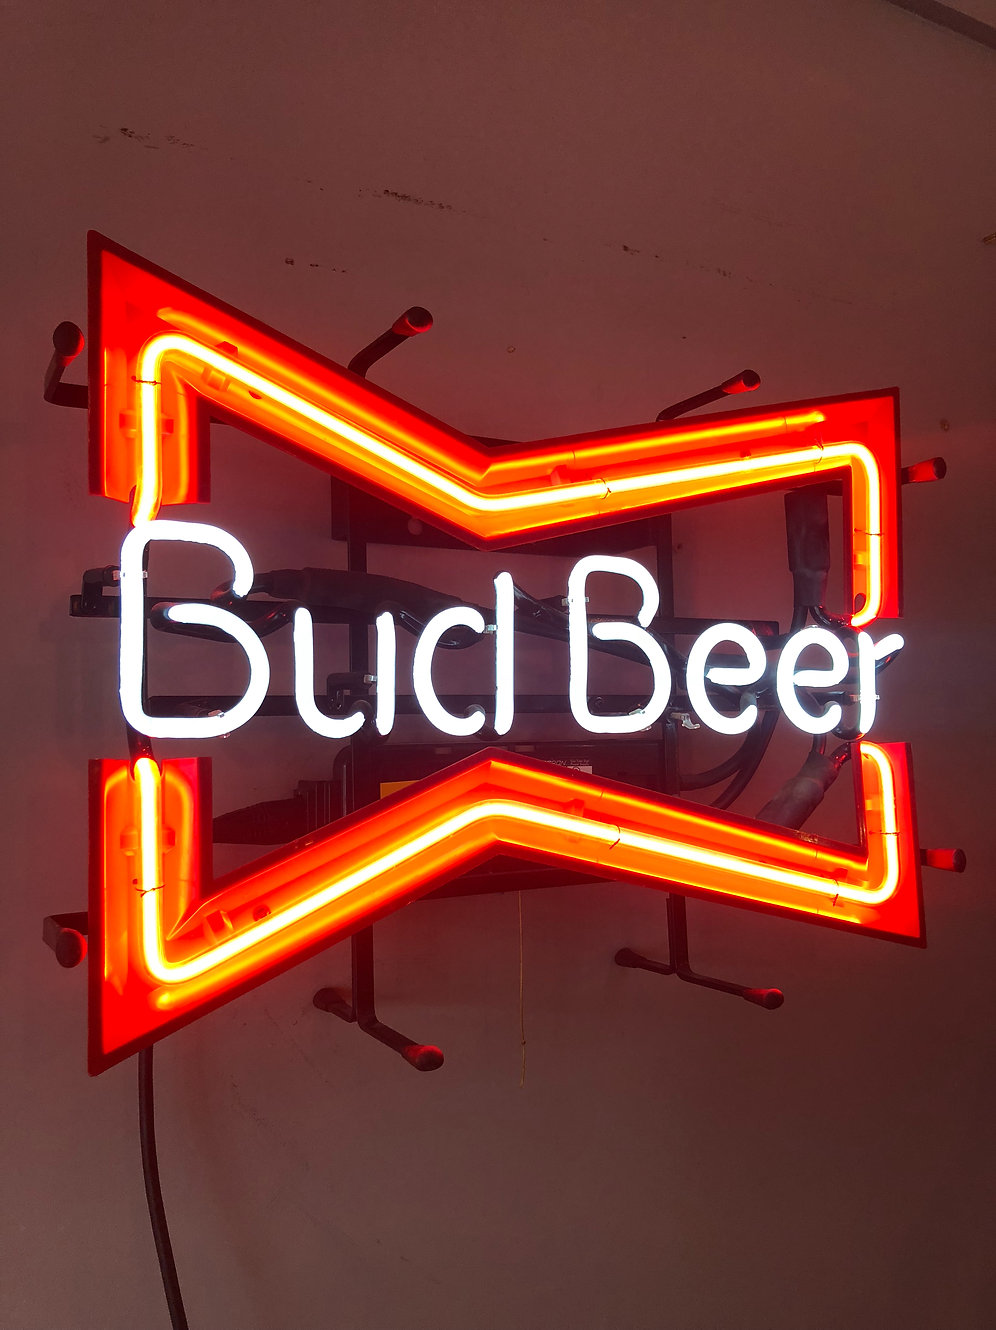 Bud beer neon light | franklin-and-hare